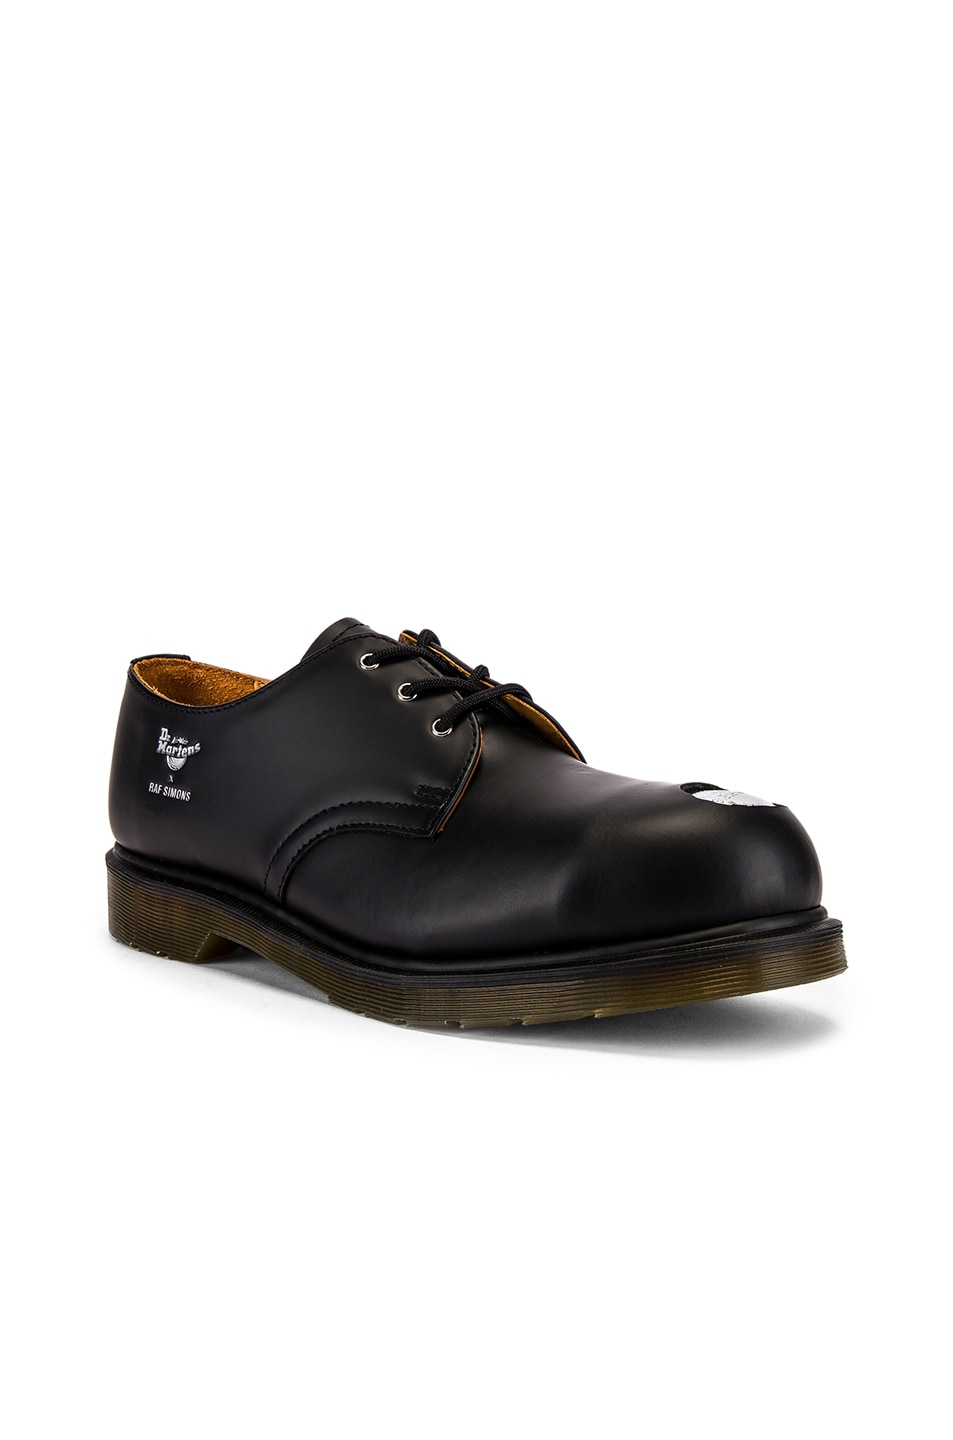 Image 1 of Raf Simons x Dr. Martens Asymmetric Cut Out Steel Shoe in Black